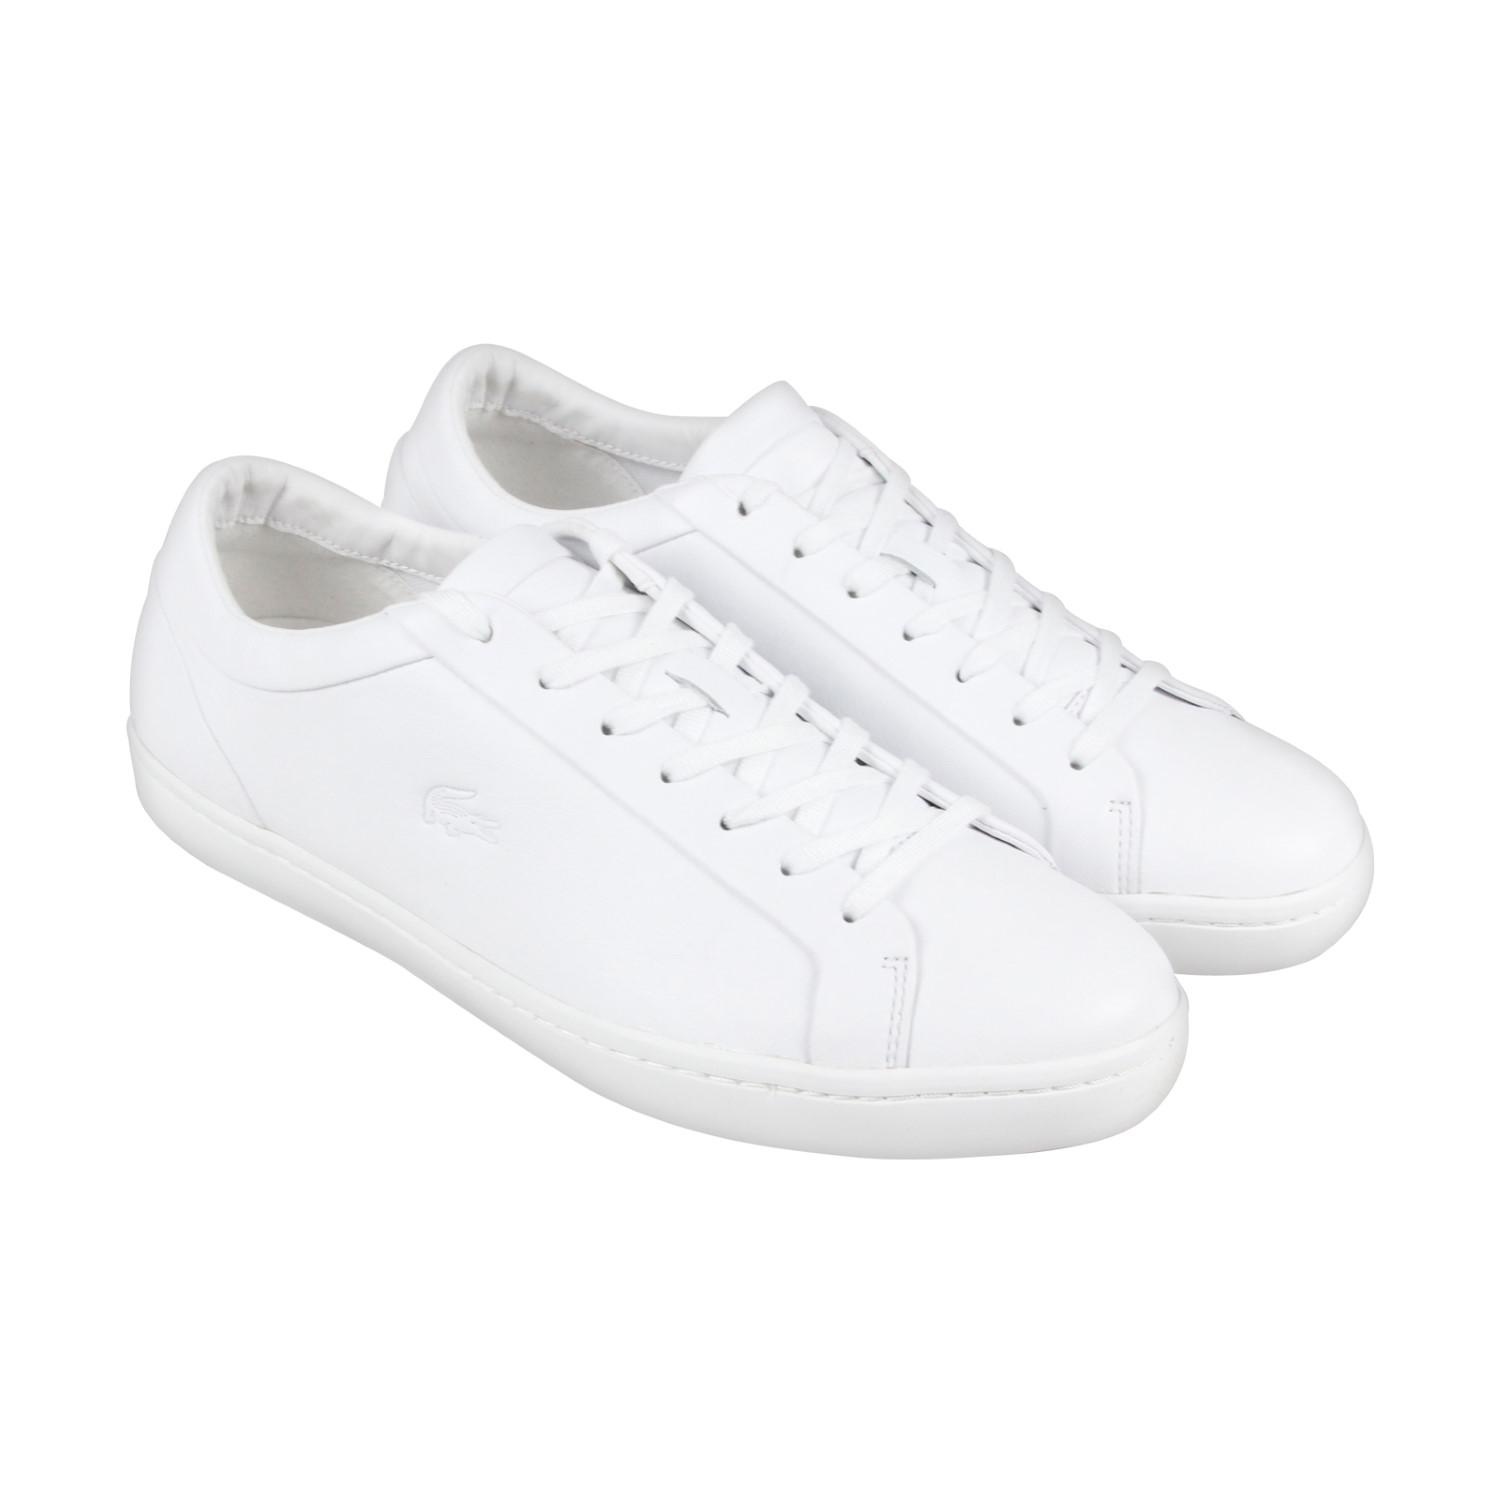 0578dc46e985b Lyst - Lacoste Straightset 316 1 Cam White Mens Lace Up Sneakers in ...